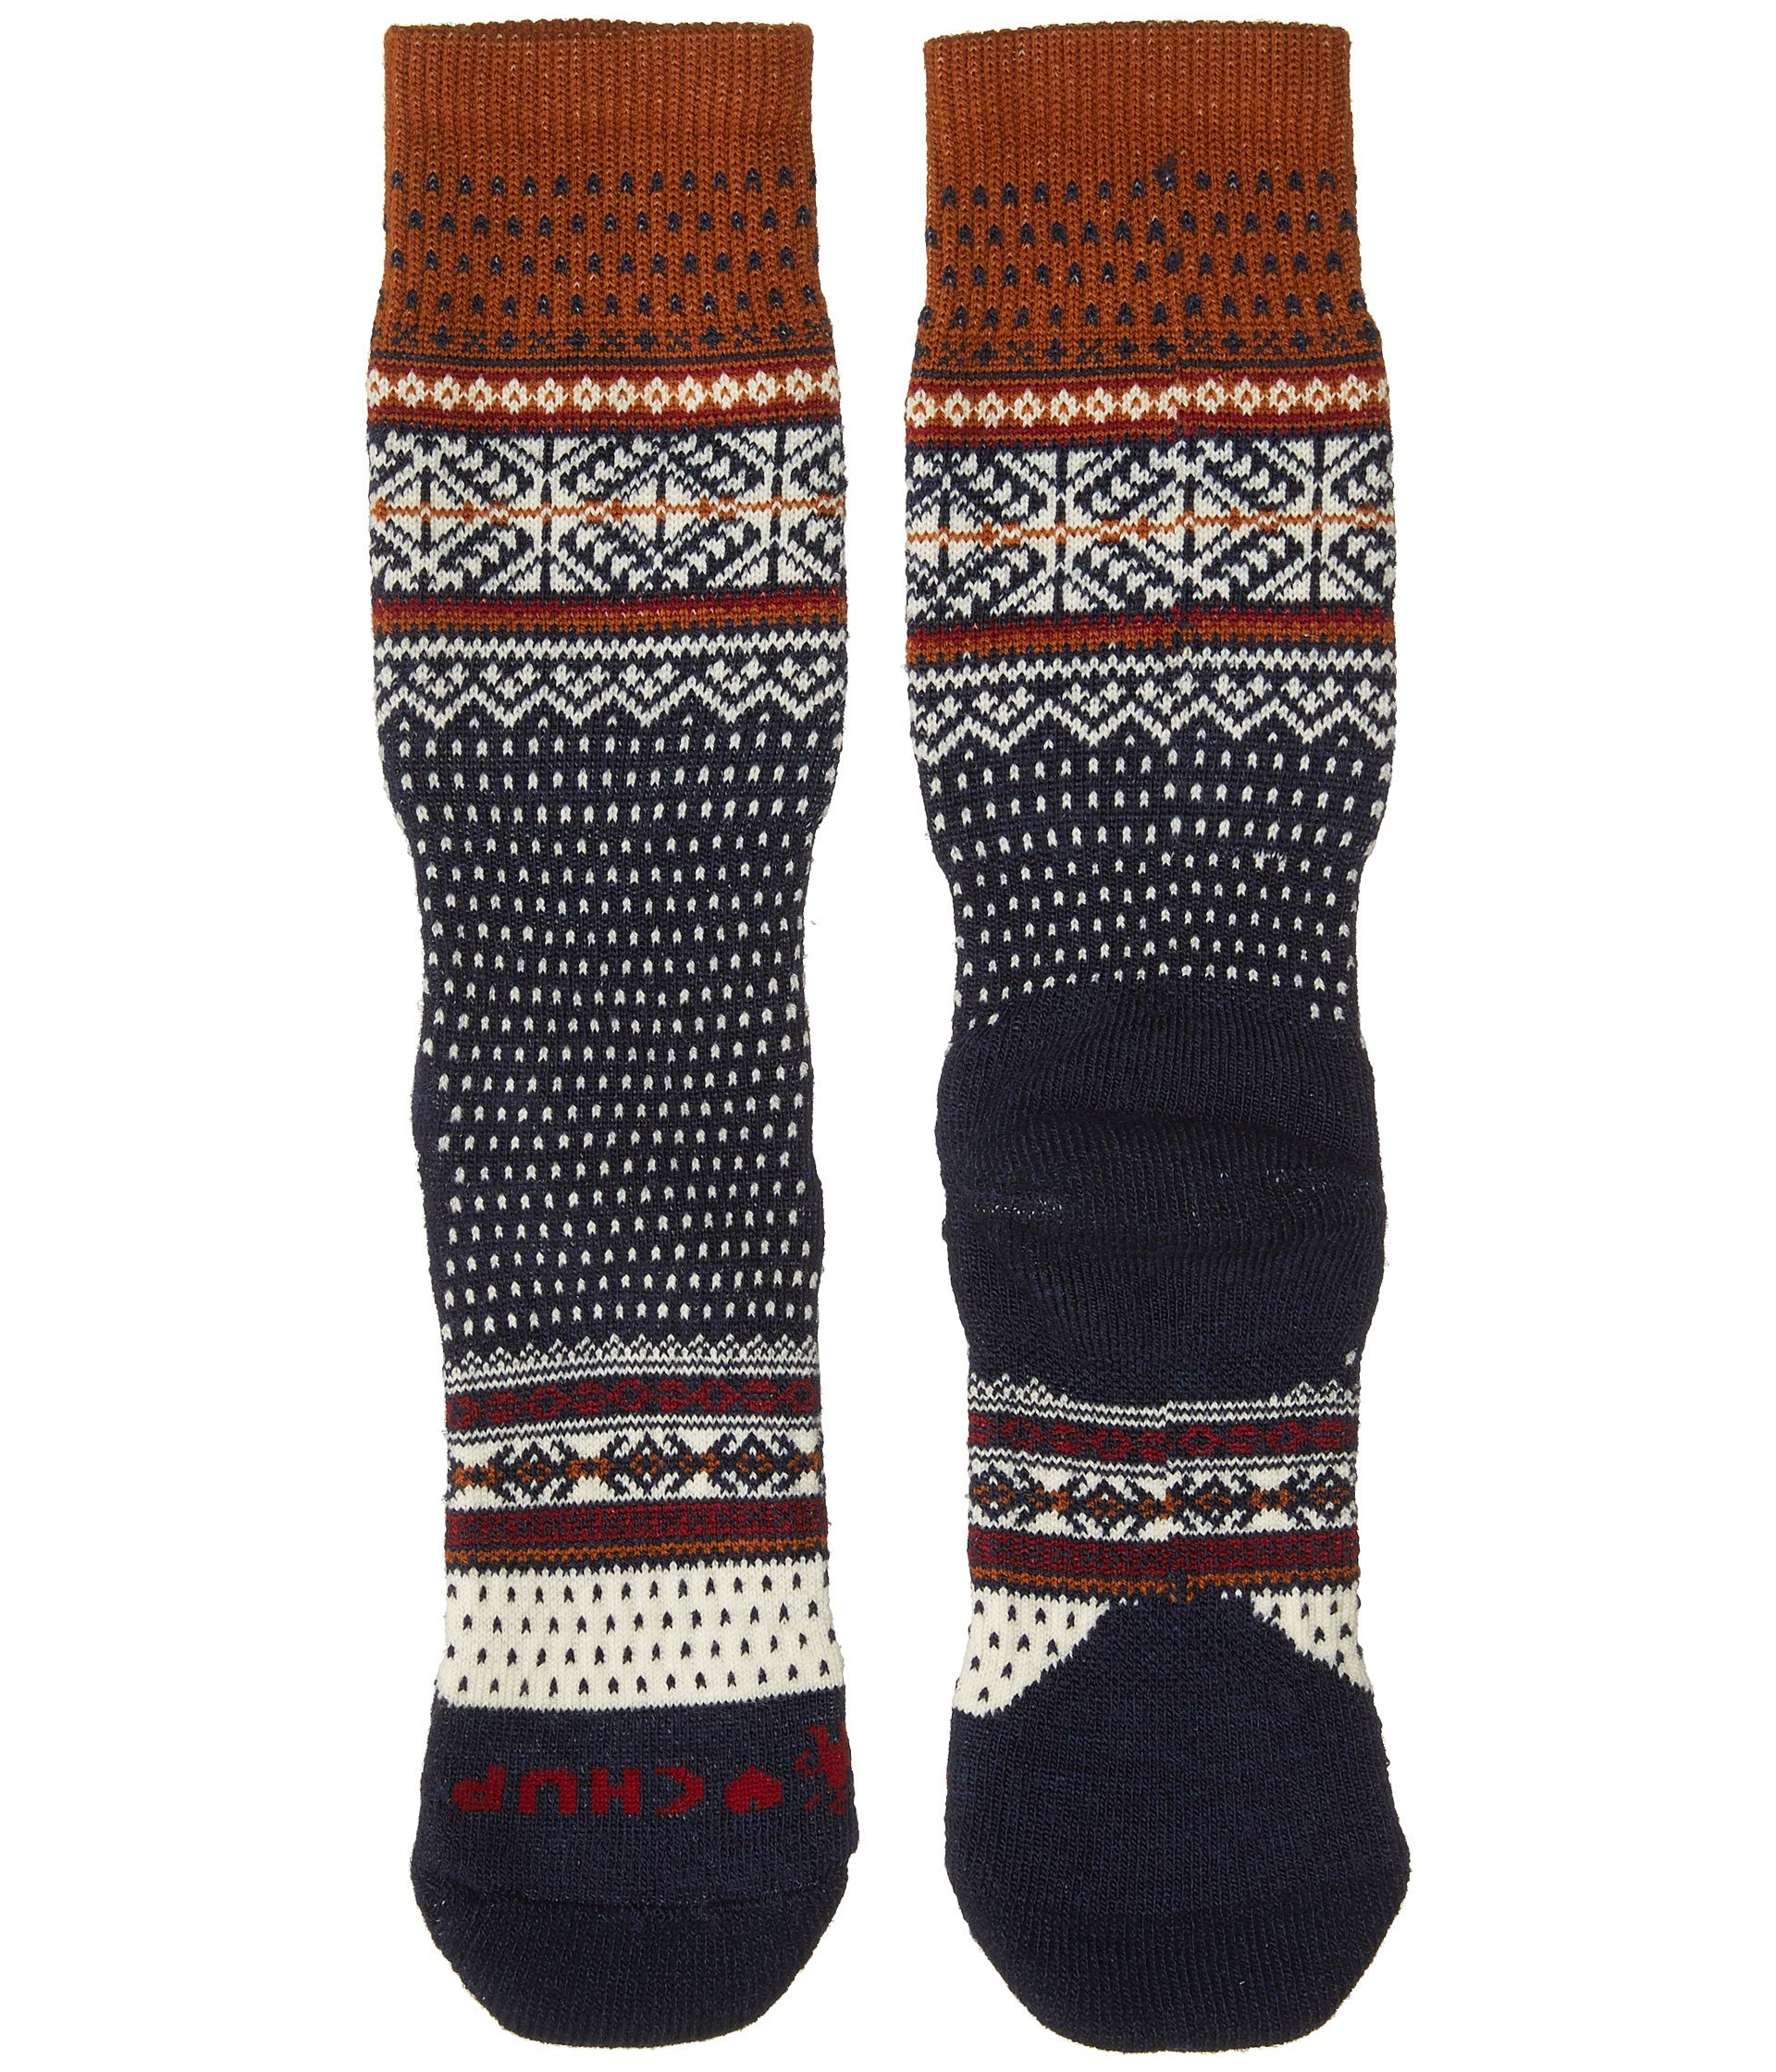 Crew Smartwool Chup Chup Genser Crew Natural Smartwool Genser Smartwool Natural Chup HxRFqxIw